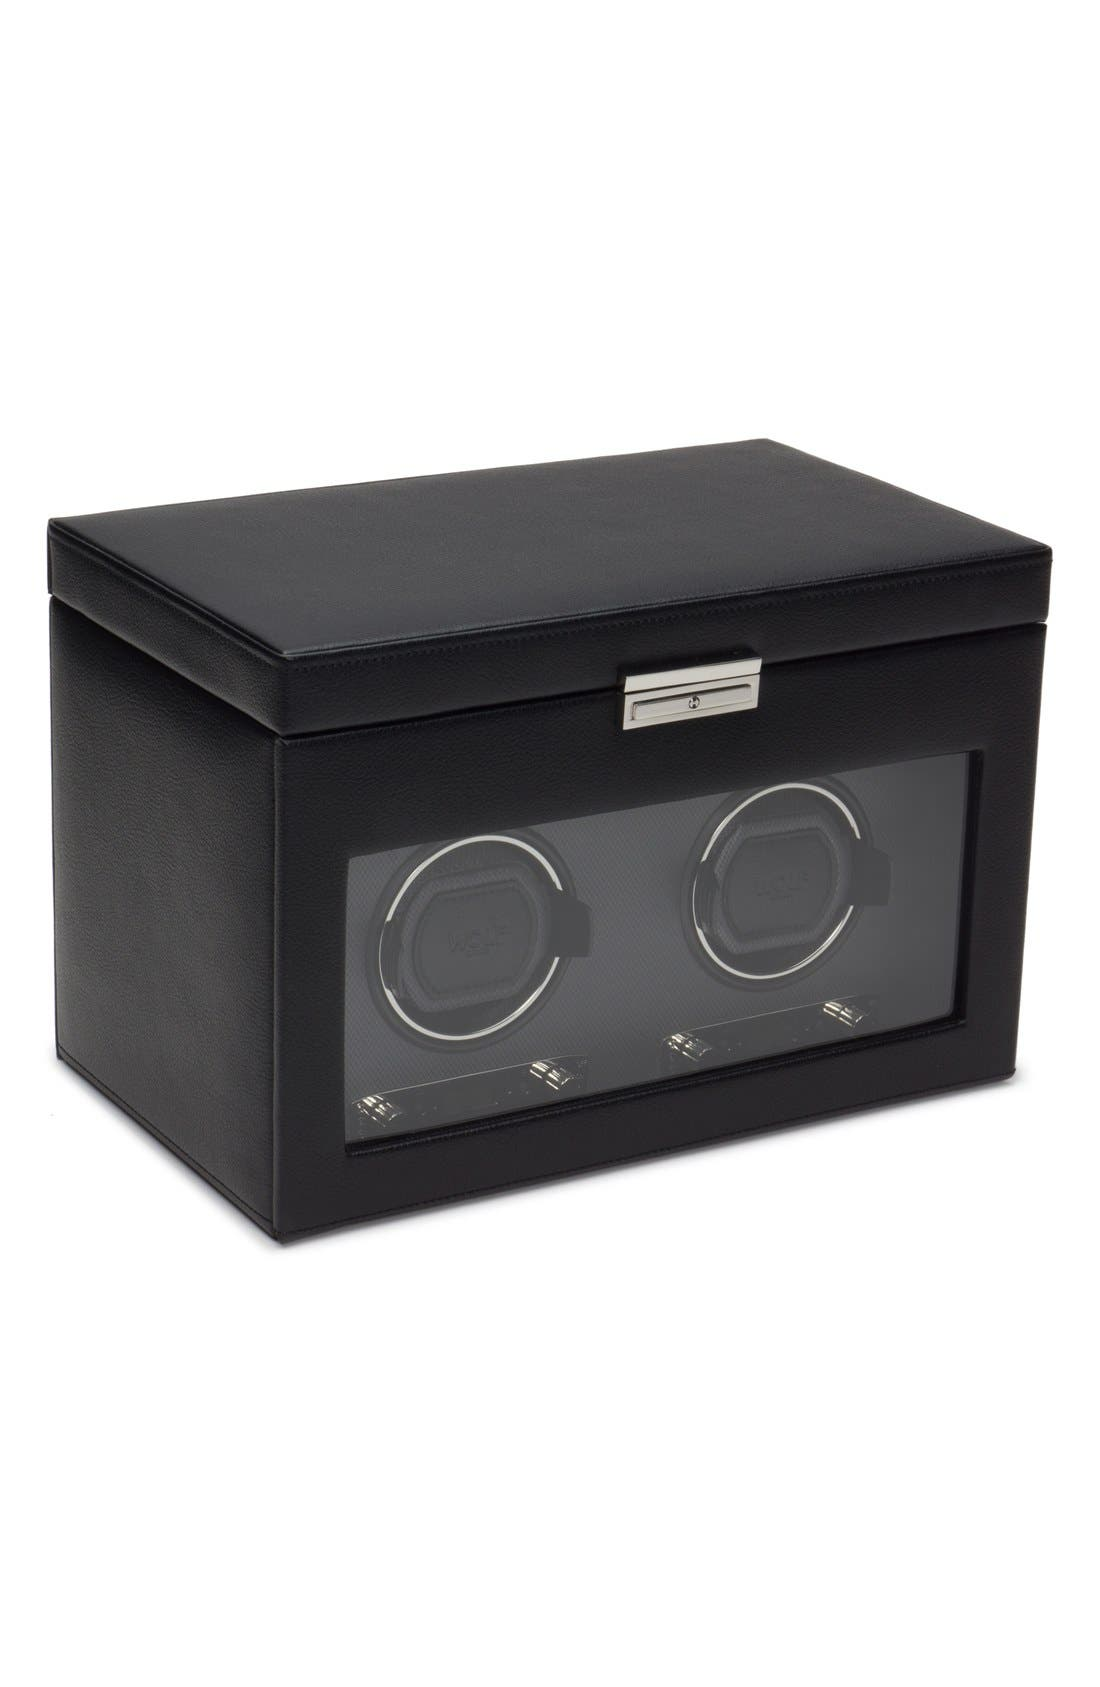 WOLF Viceroy Double Watch Winder & Storage Space - Black